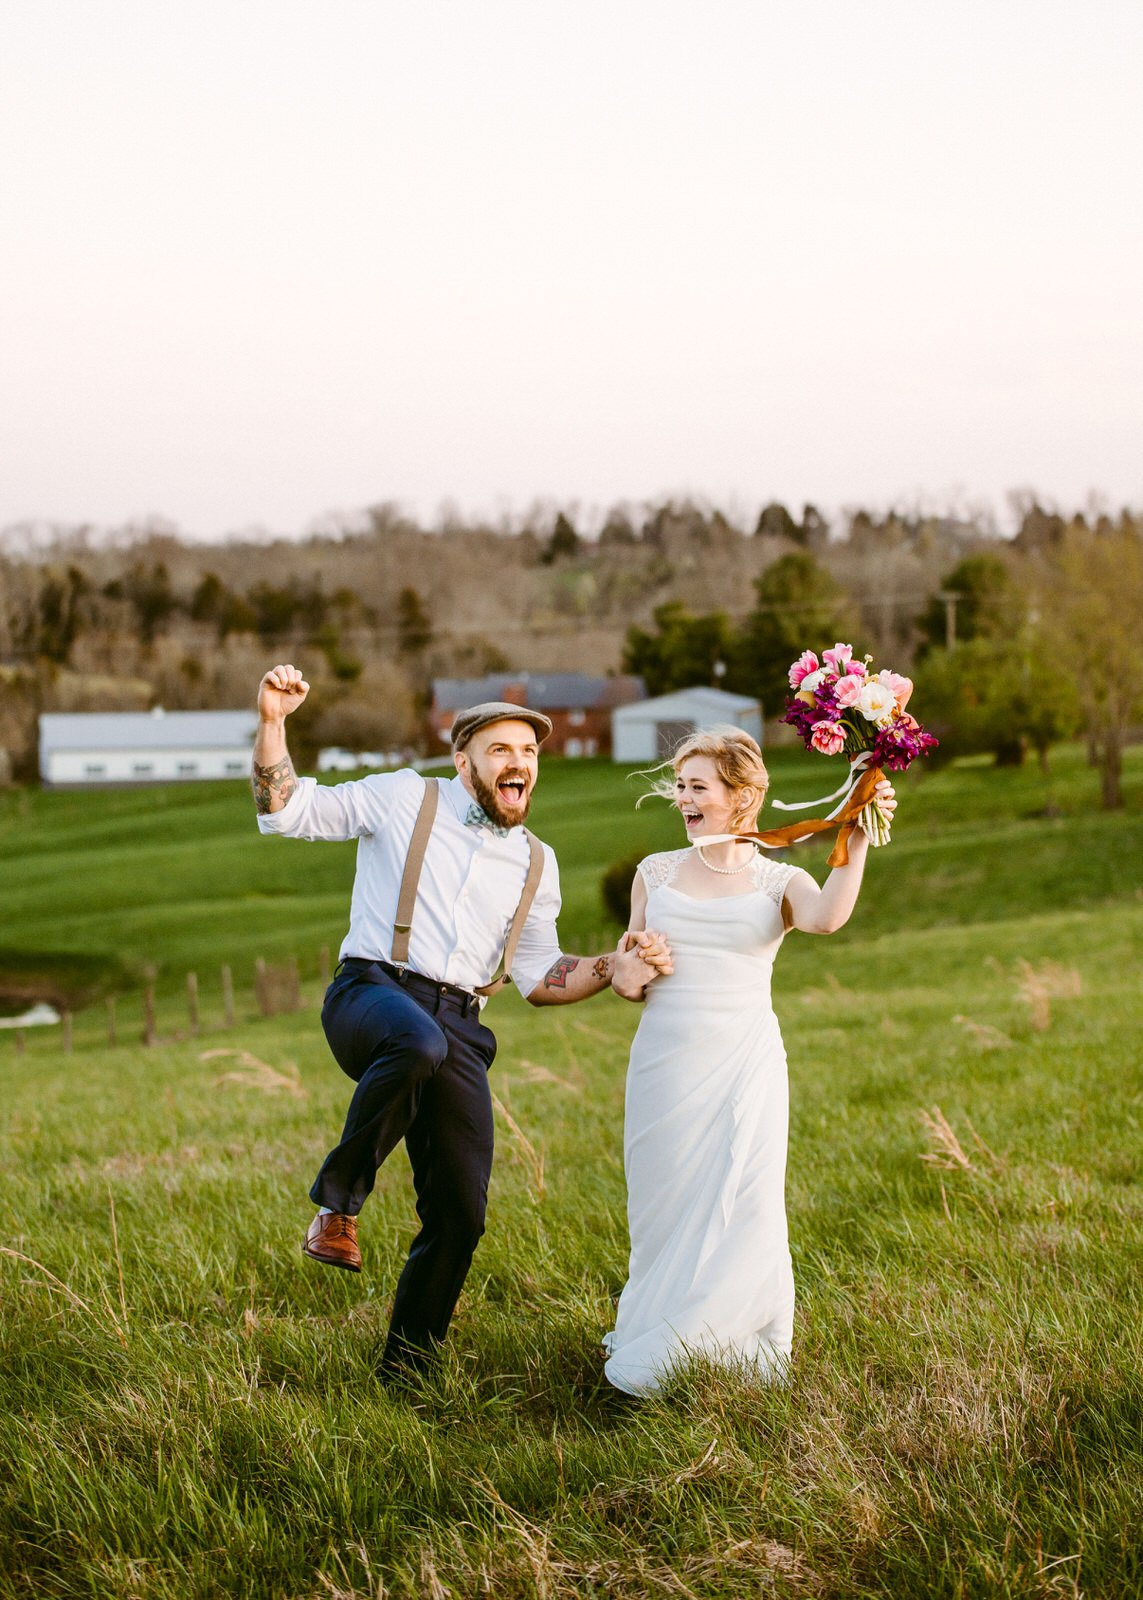 groom in suspenders and bride with bouquet on a hill celebrate and jump on a hillside overlooking a Kentucky farm